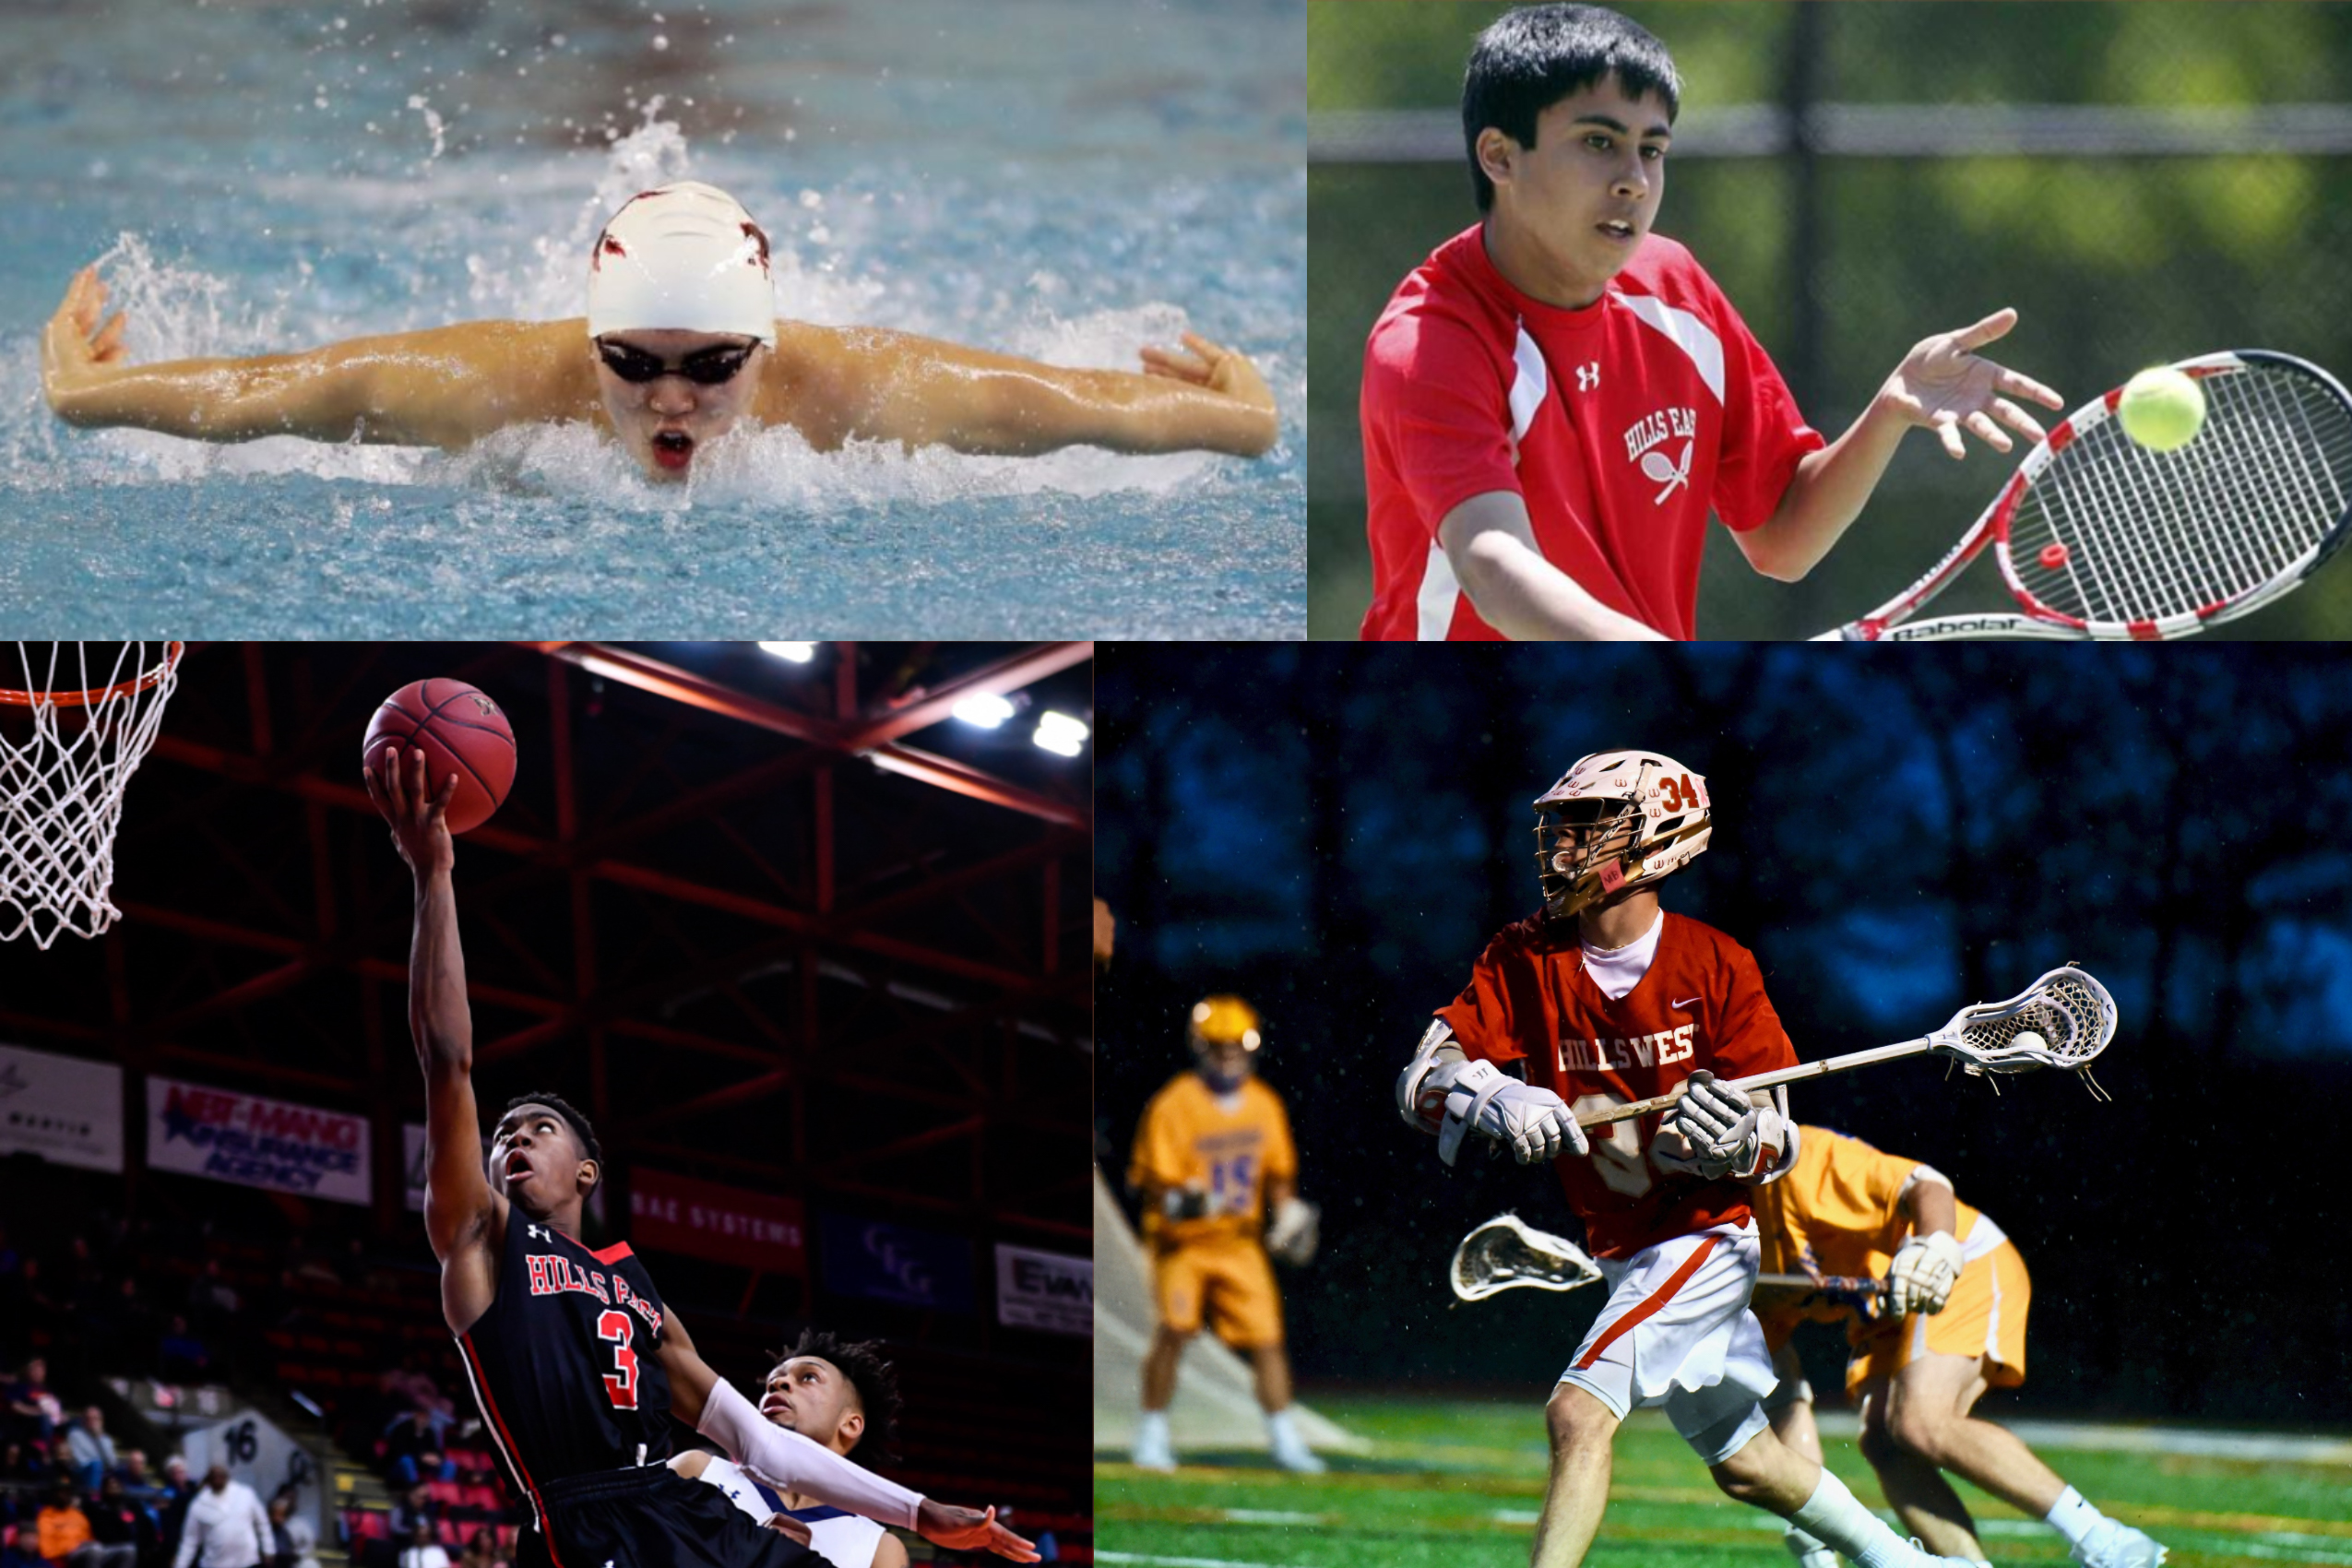 Four Alumni Named To Newsday's List Of Top 100 Boy Athletes Of The 2010s